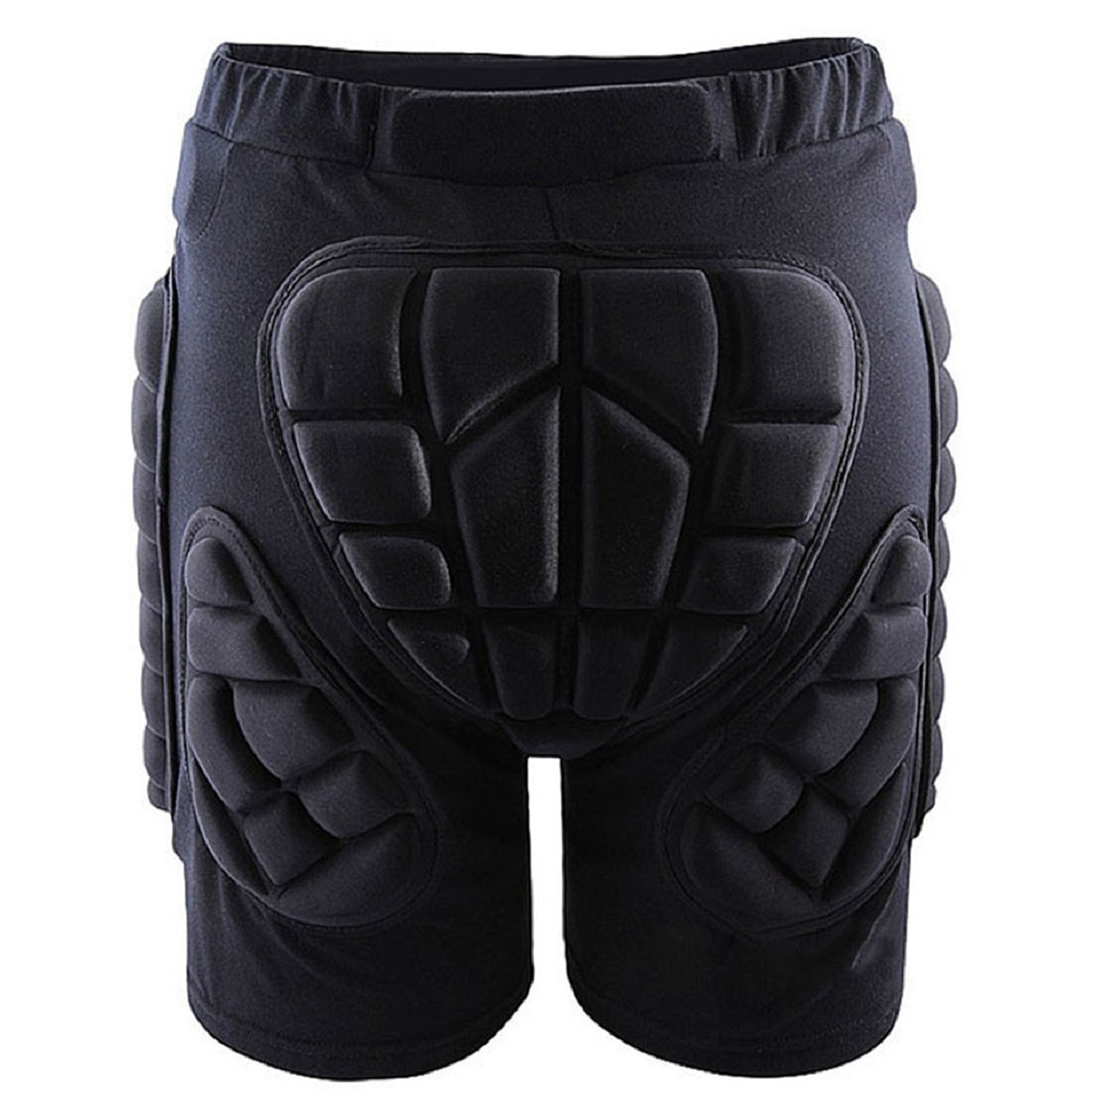 Outdoor Gear Hip Protective Shorts Skate Skating Snowboard Pants, Black L ...